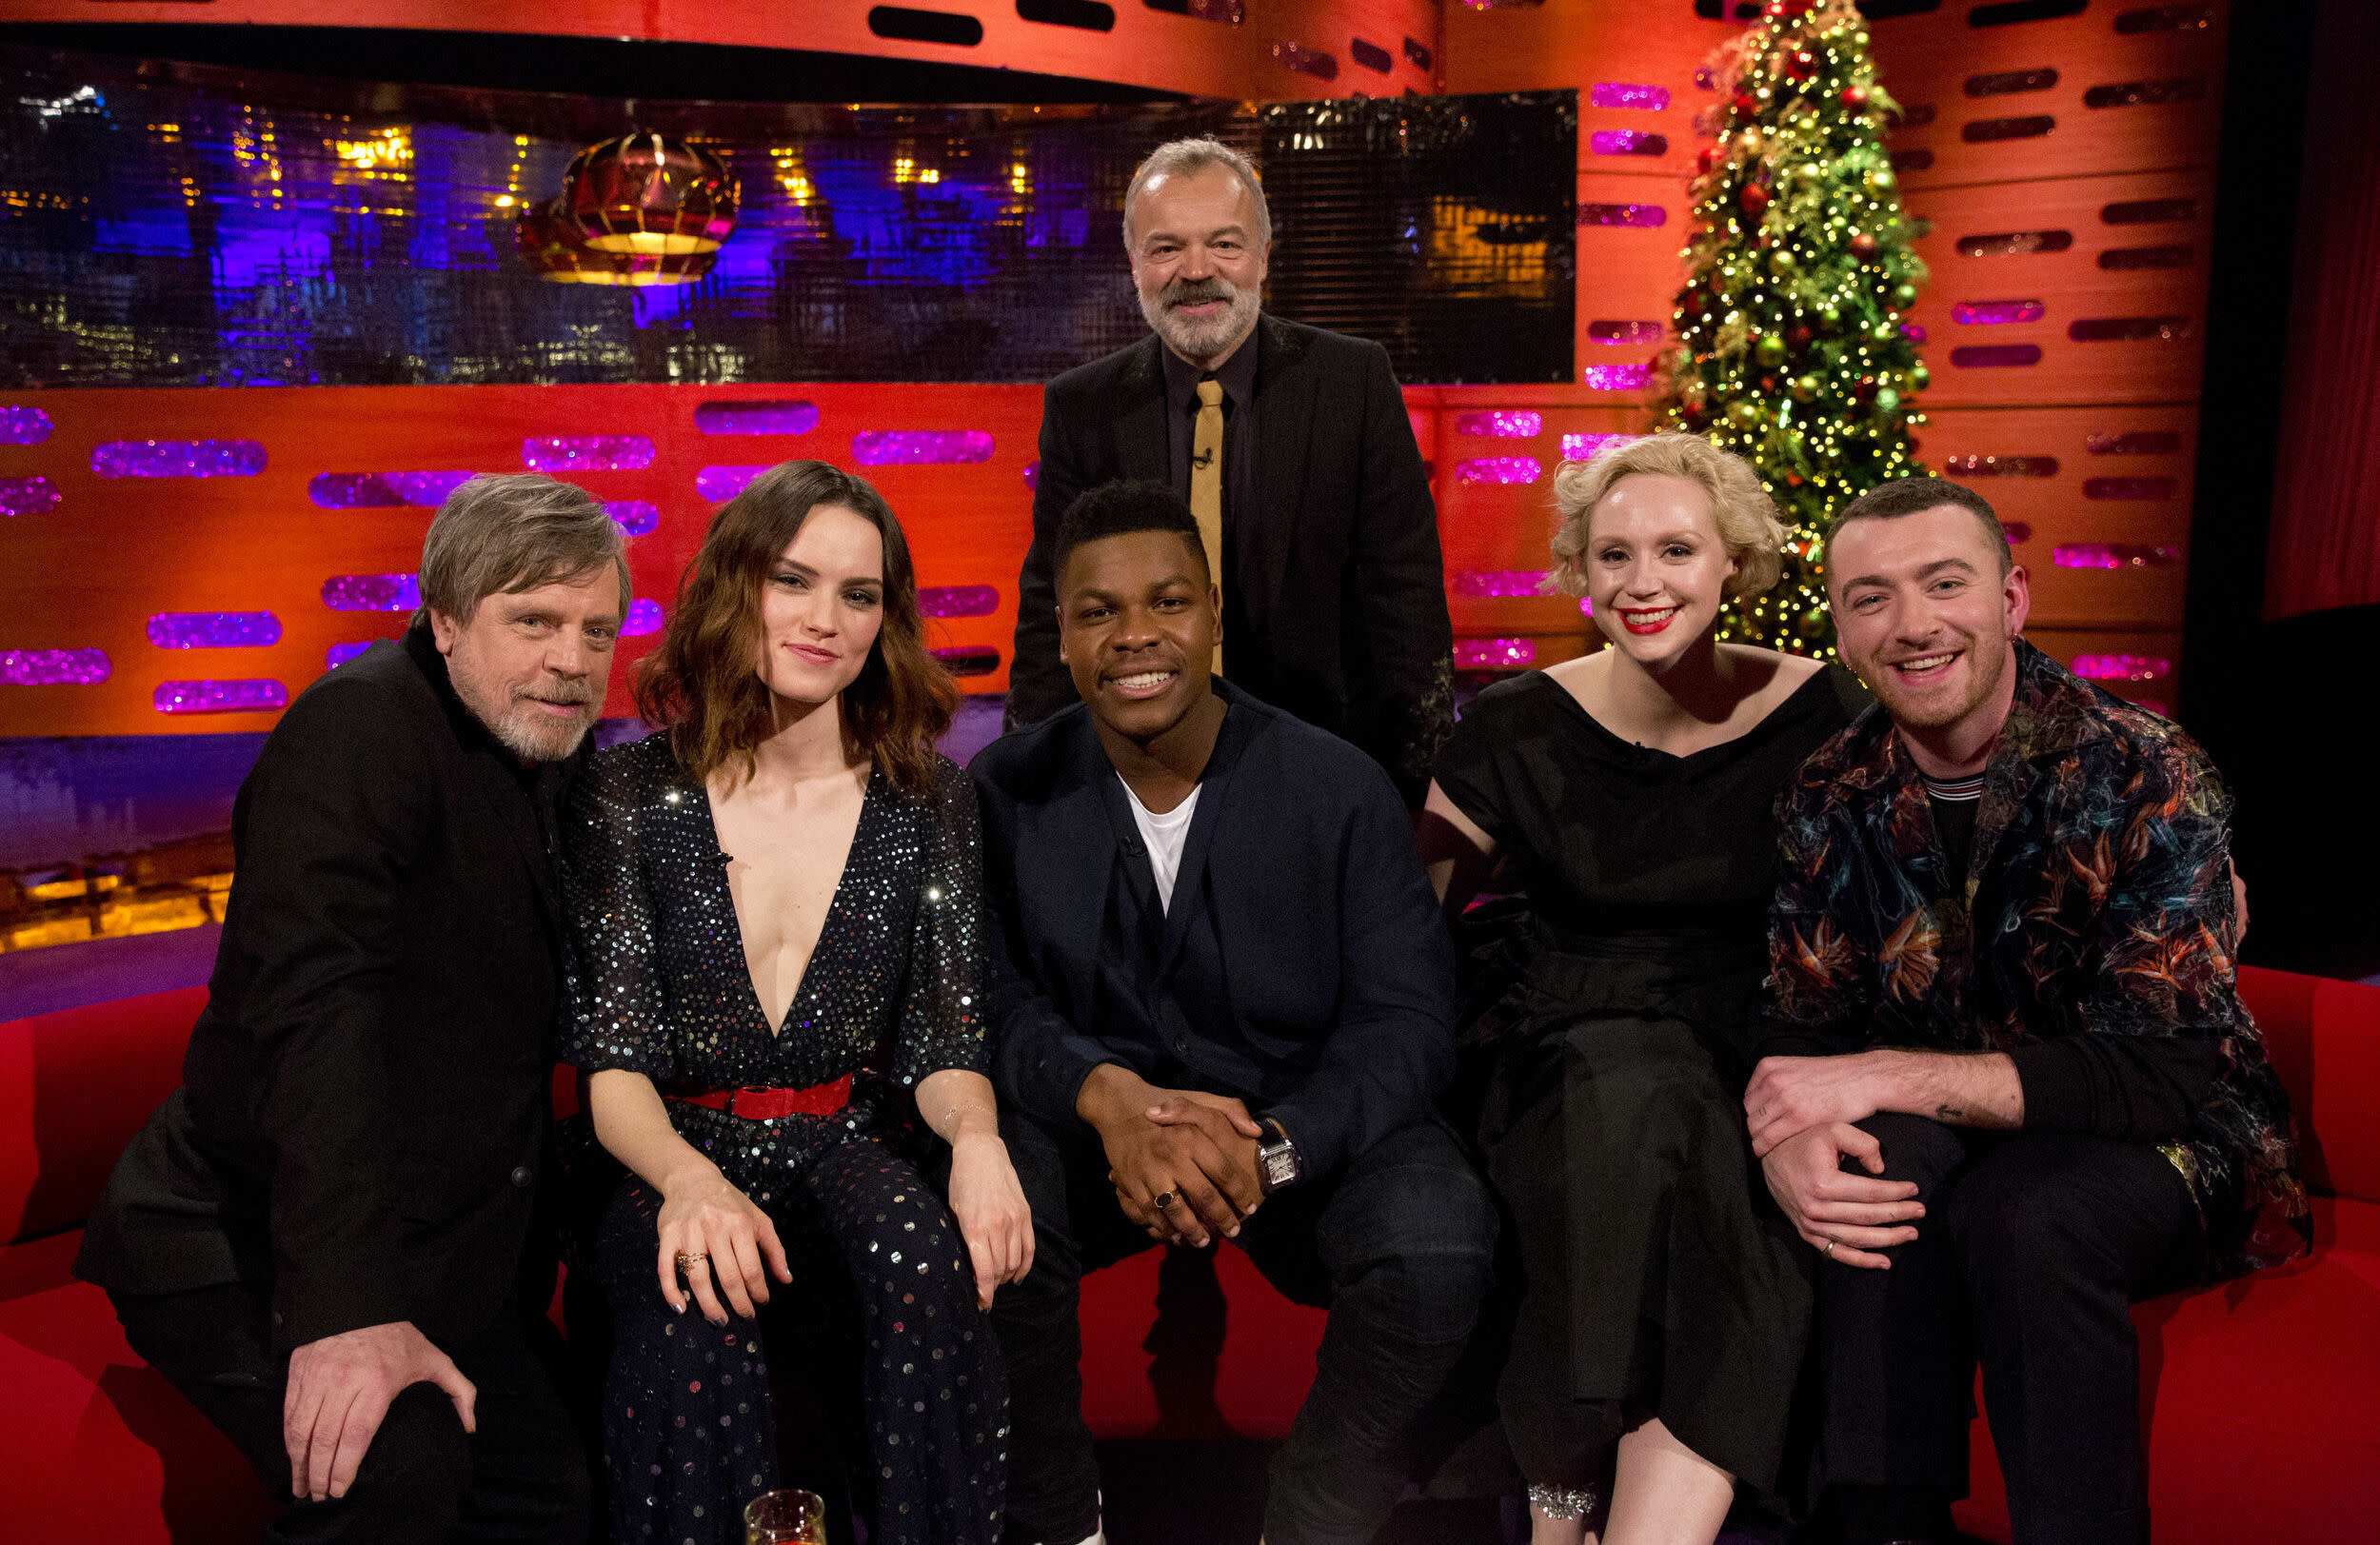 (left to right) Mark Hamill, Daisy Ridley, John Boyega, Graham Norton, Gwendoline Christie and Sam Smith during filming of the Graham Norton Show at The London Studios, to be aired on BBC One on Friday.